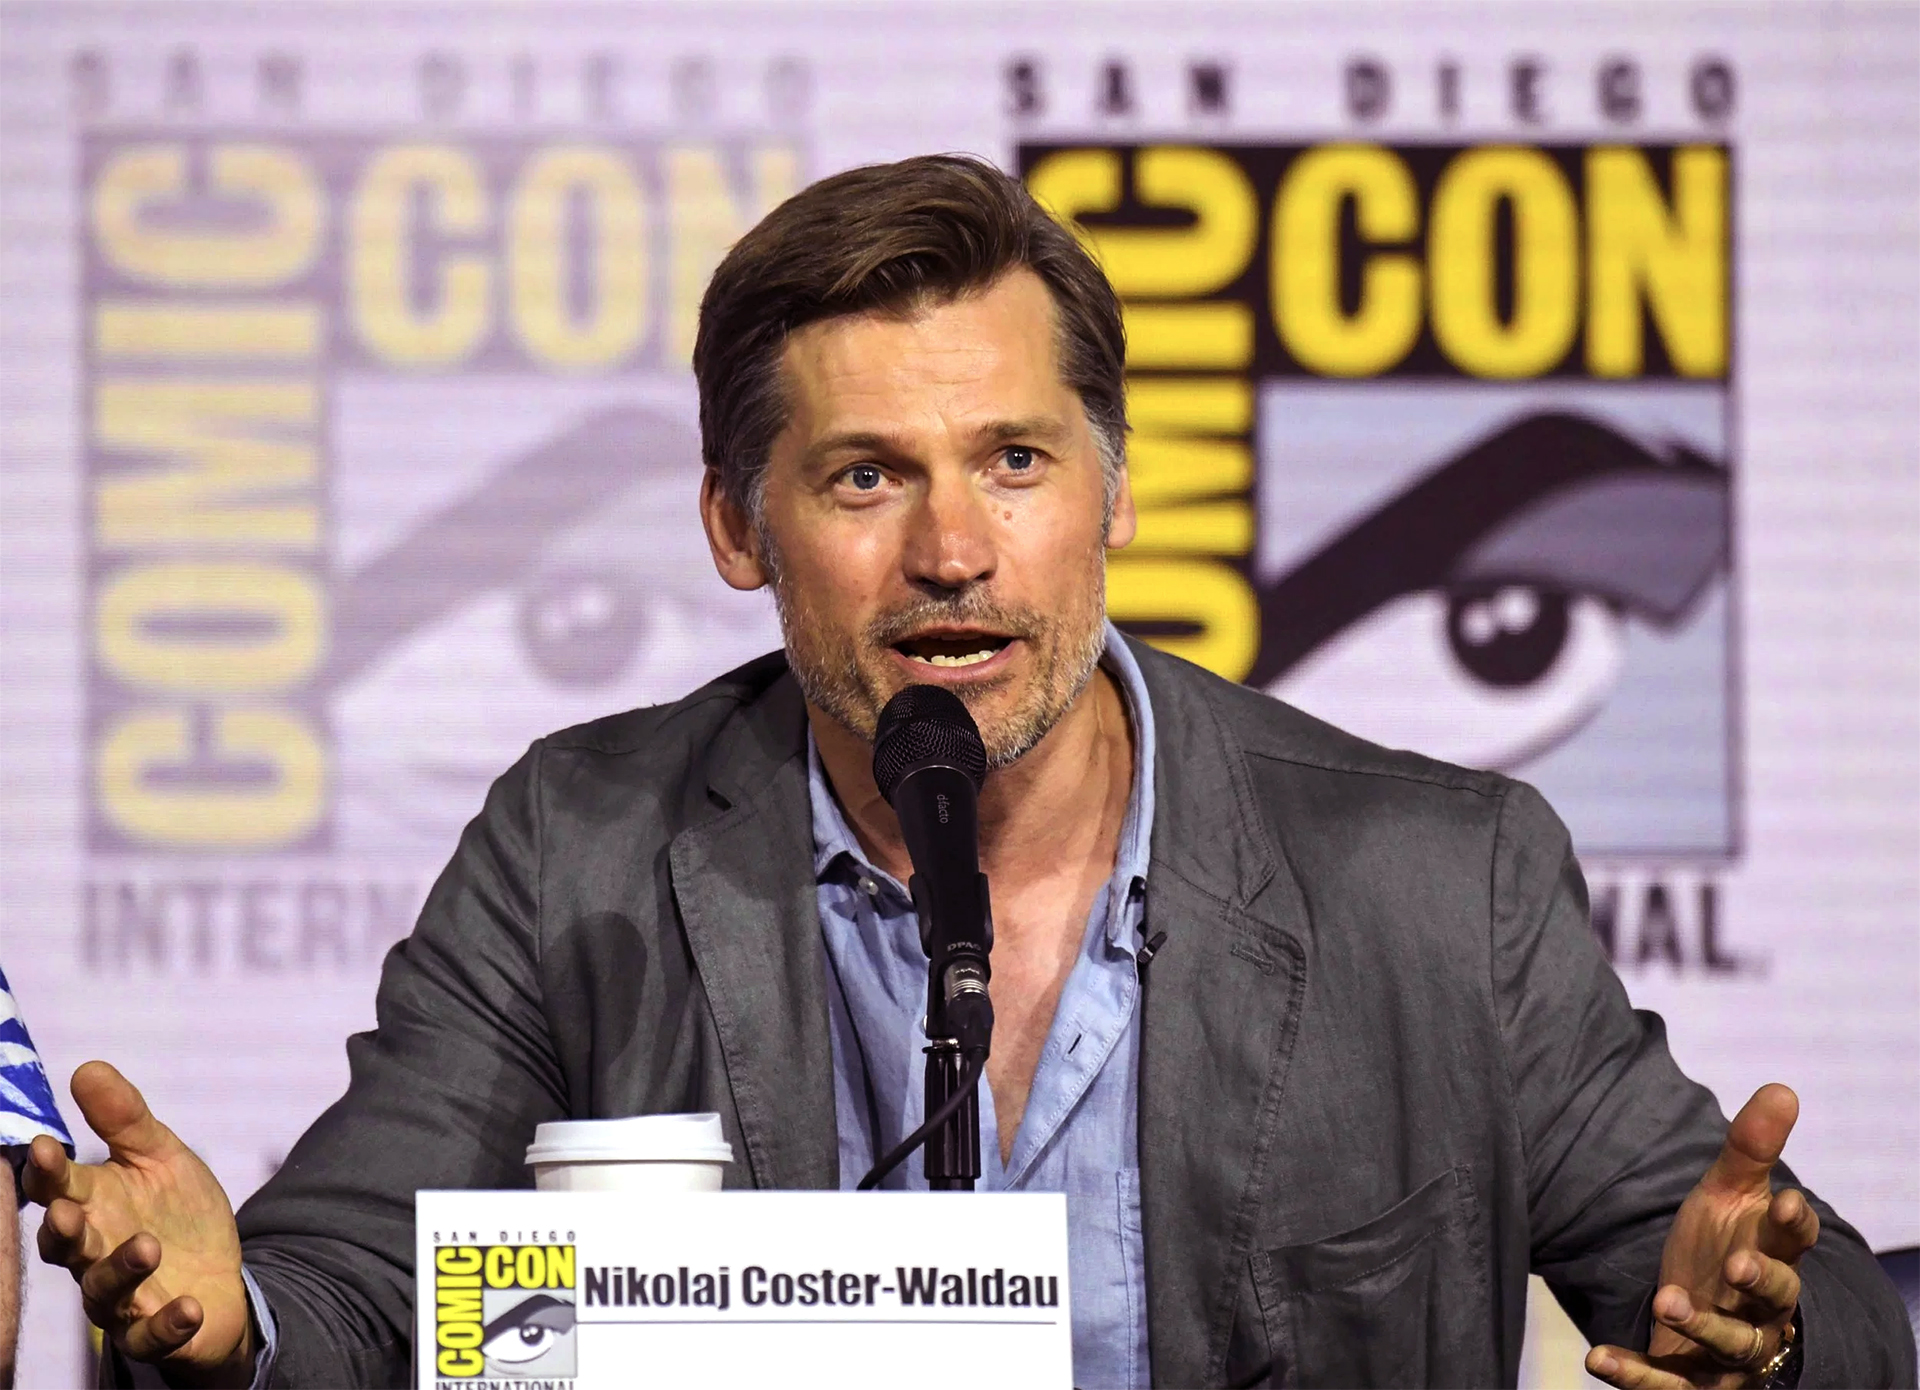 'Game of Thrones' Star Nikolaj Coster-Waldau Alerts Fans to Scam Ads Using His Likeness